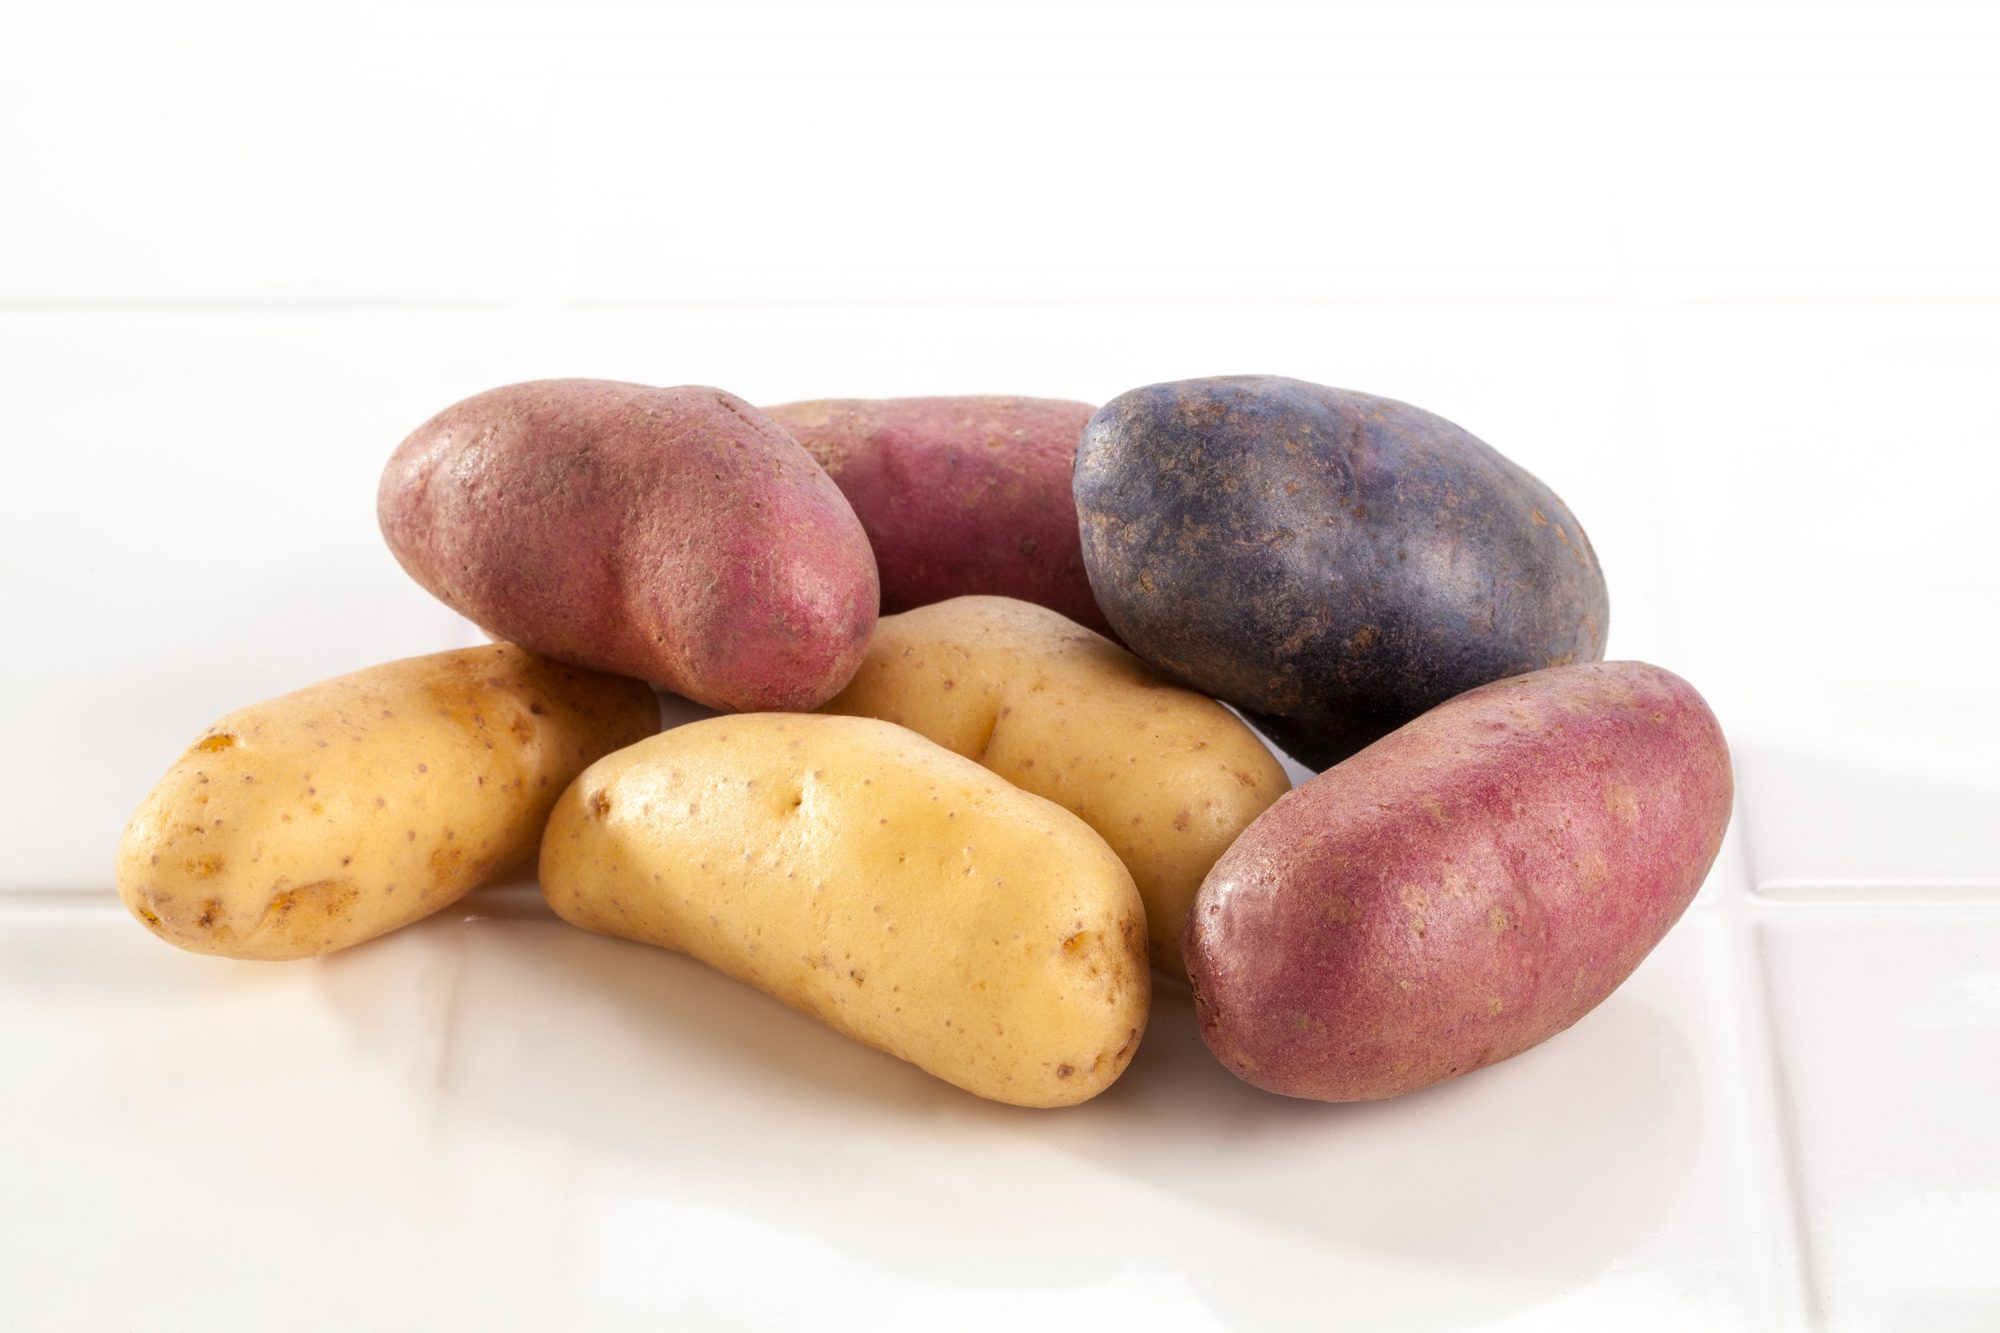 Multicolored fingerling potatoes